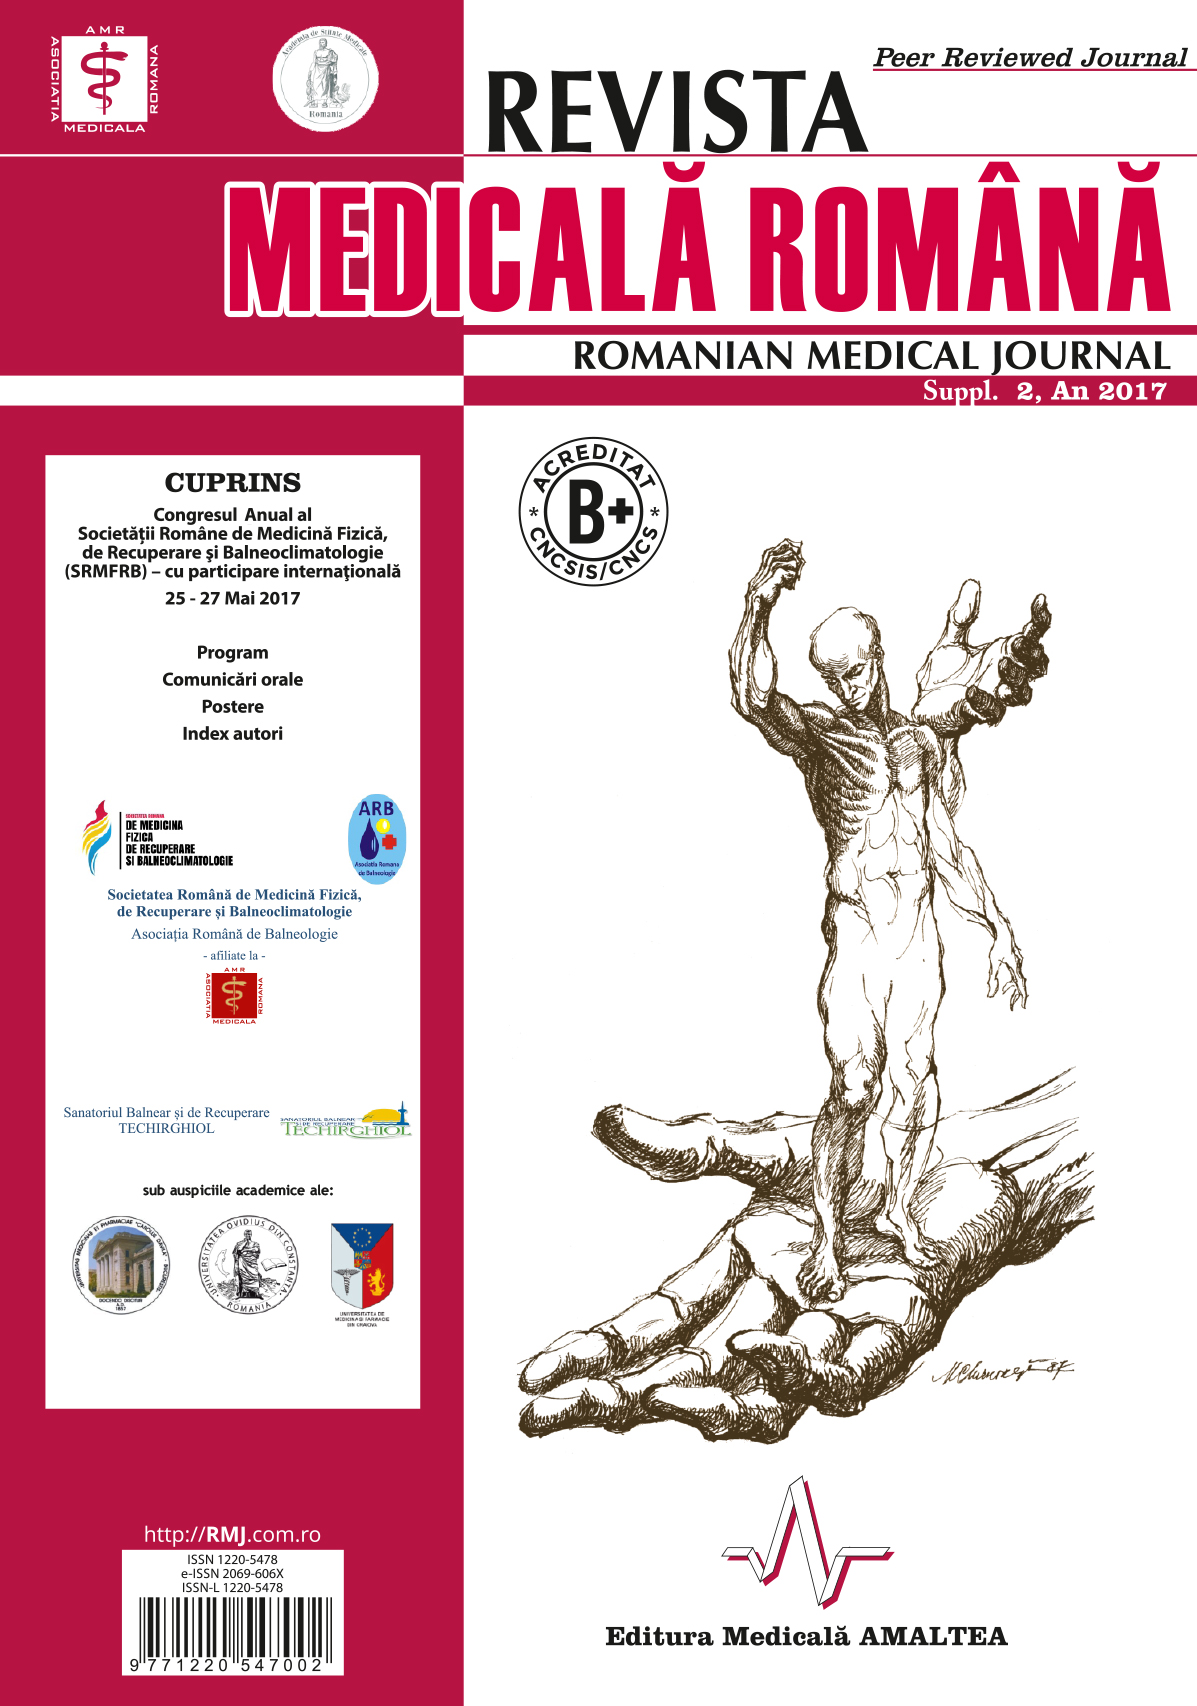 REVISTA MEDICALA ROMANA - Romanian Medical Journal, Vol. LXIV, Suppl. 2, An 2017